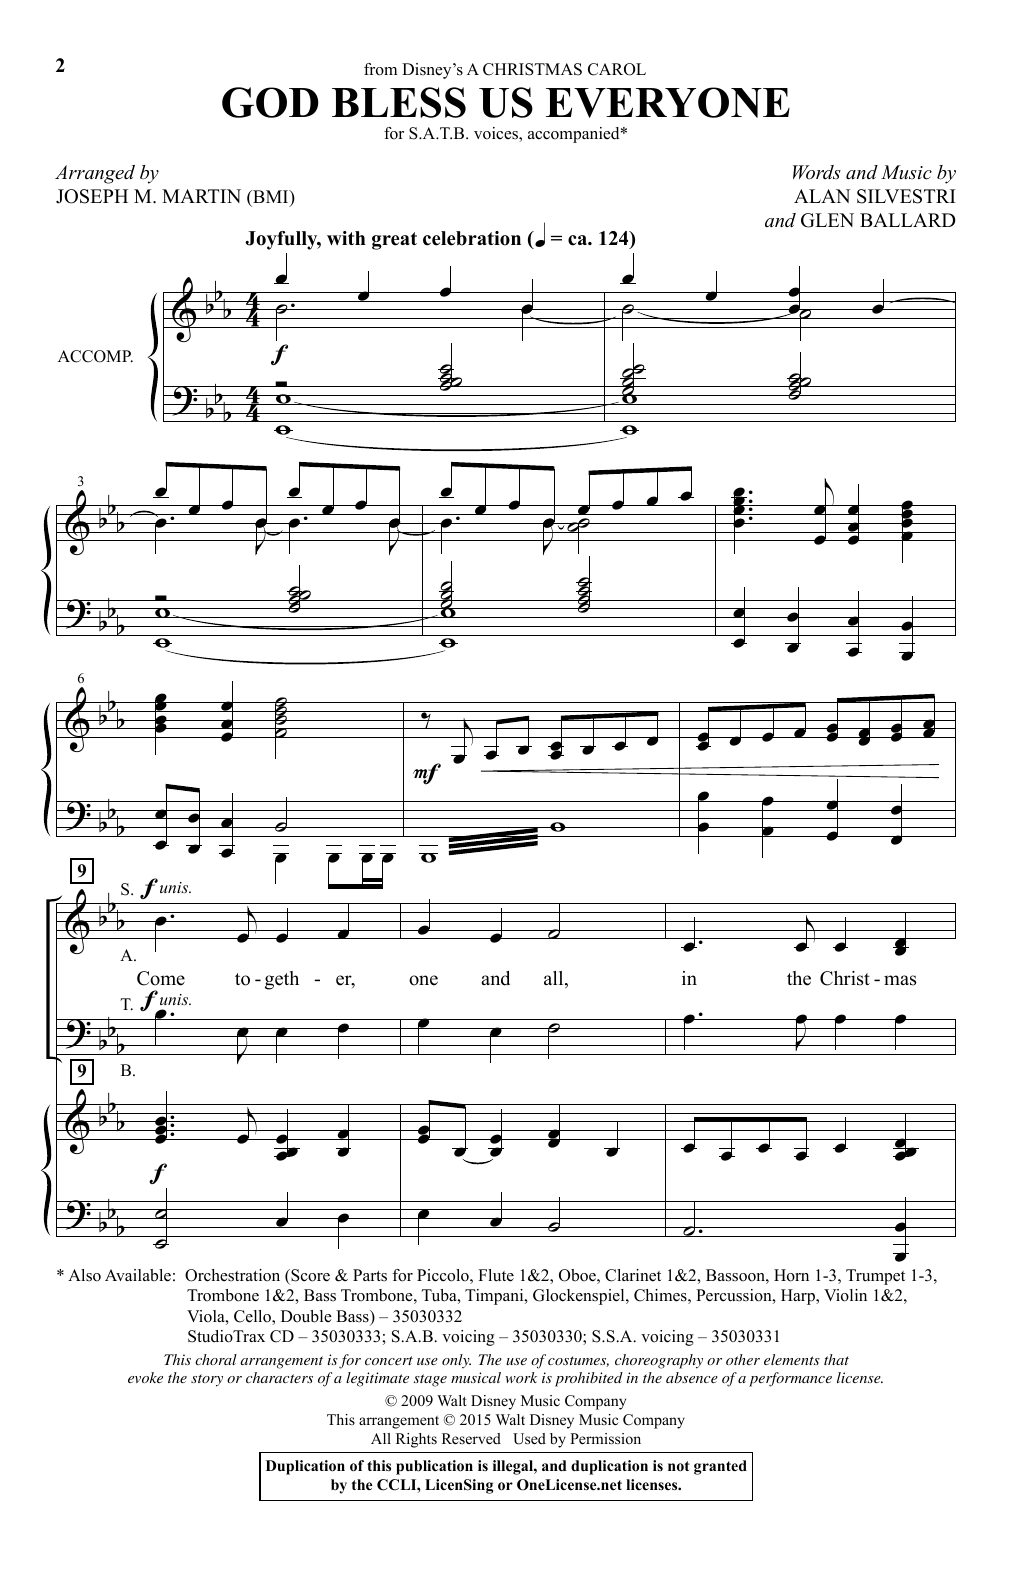 God Bless Us Everyone (from Disney's A Christmas Carol) Sheet Music